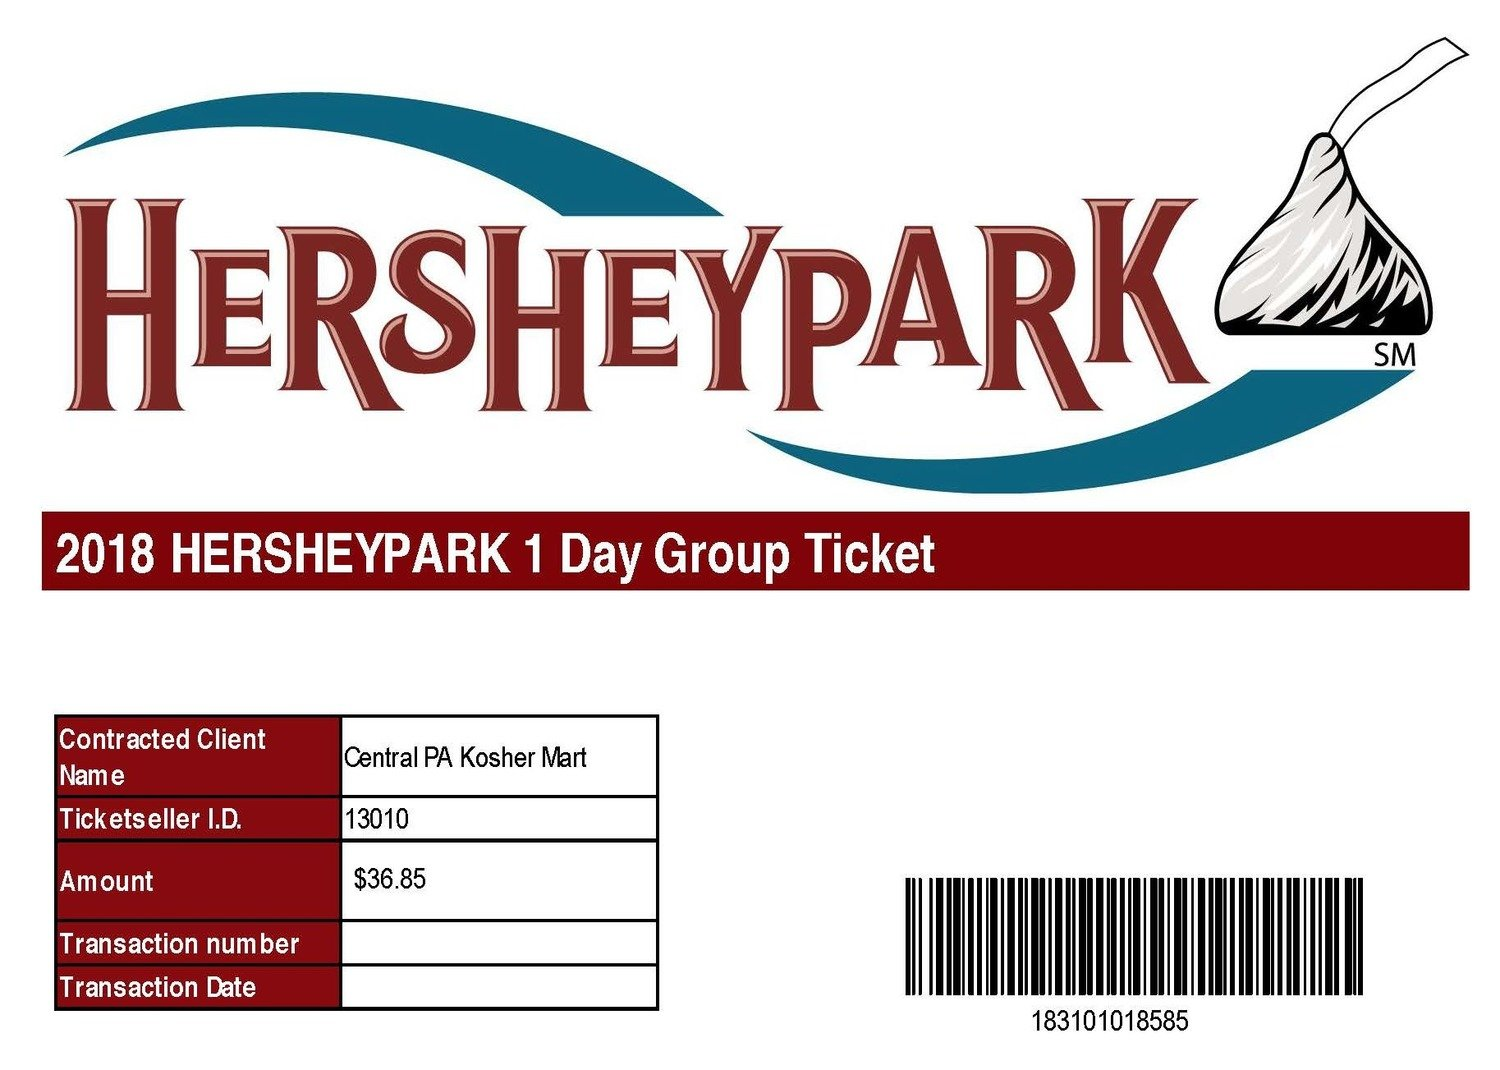 Group Ticket- Purchase Deadline March 30th